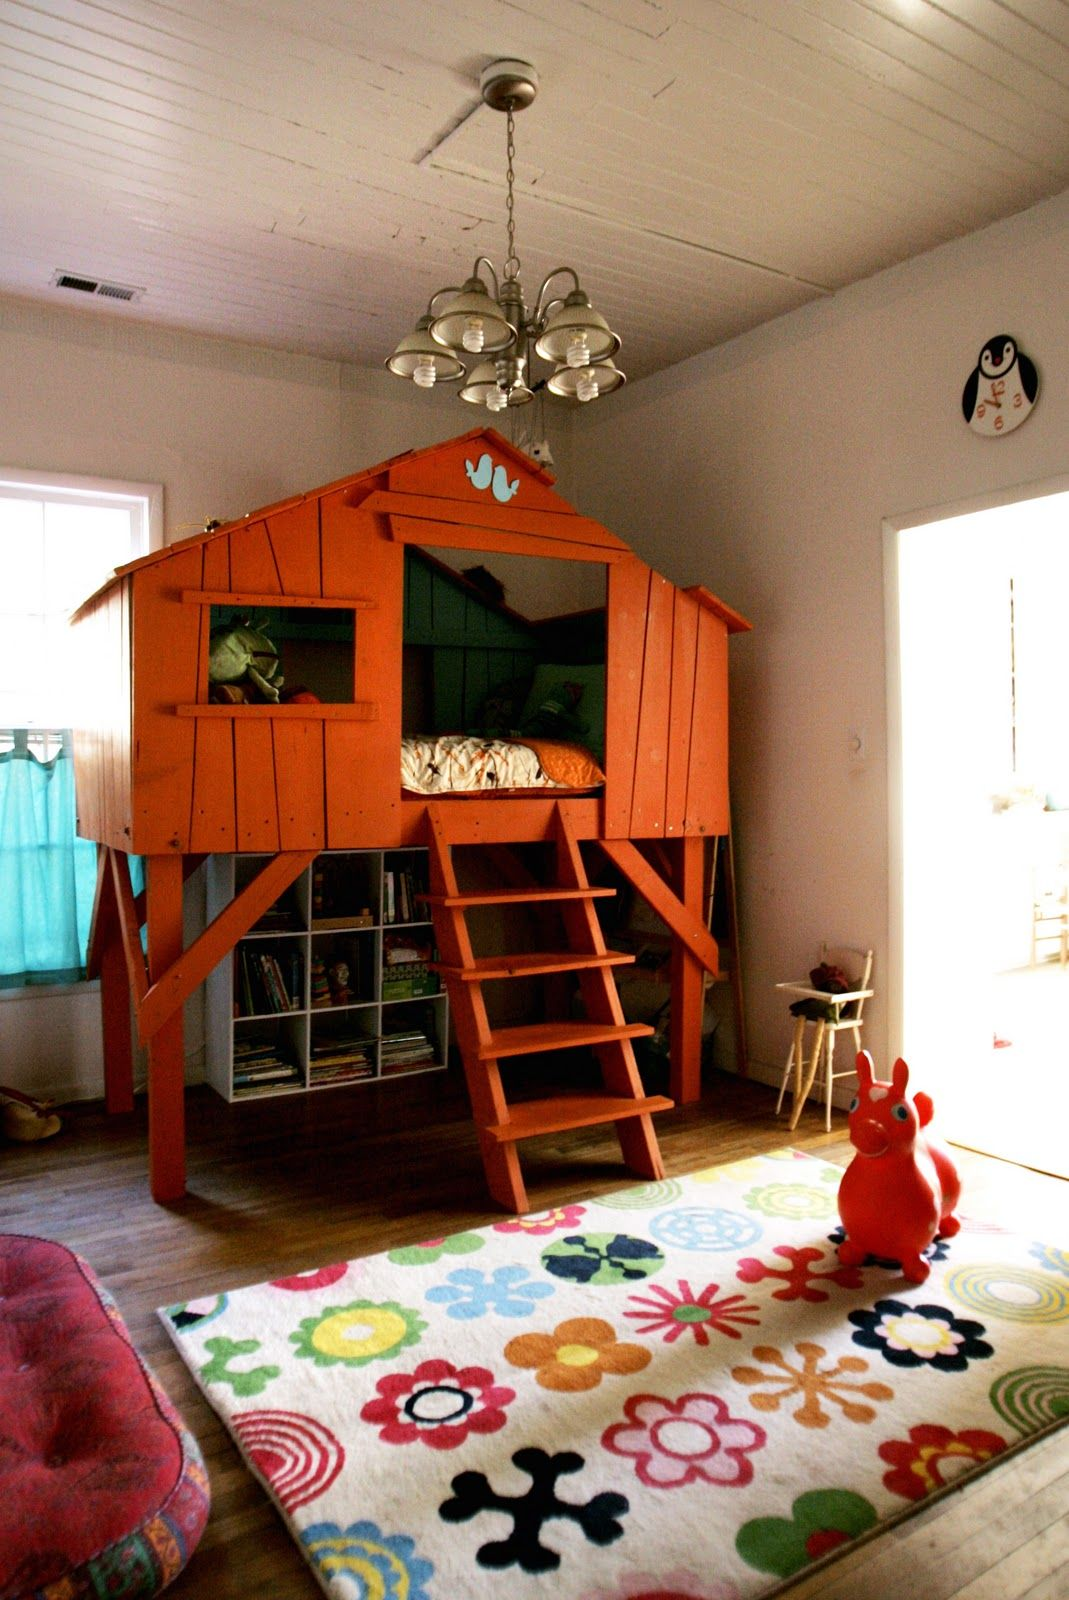 DIY Childrens House Bed Loft - Whitley wants this, but mommy and ...